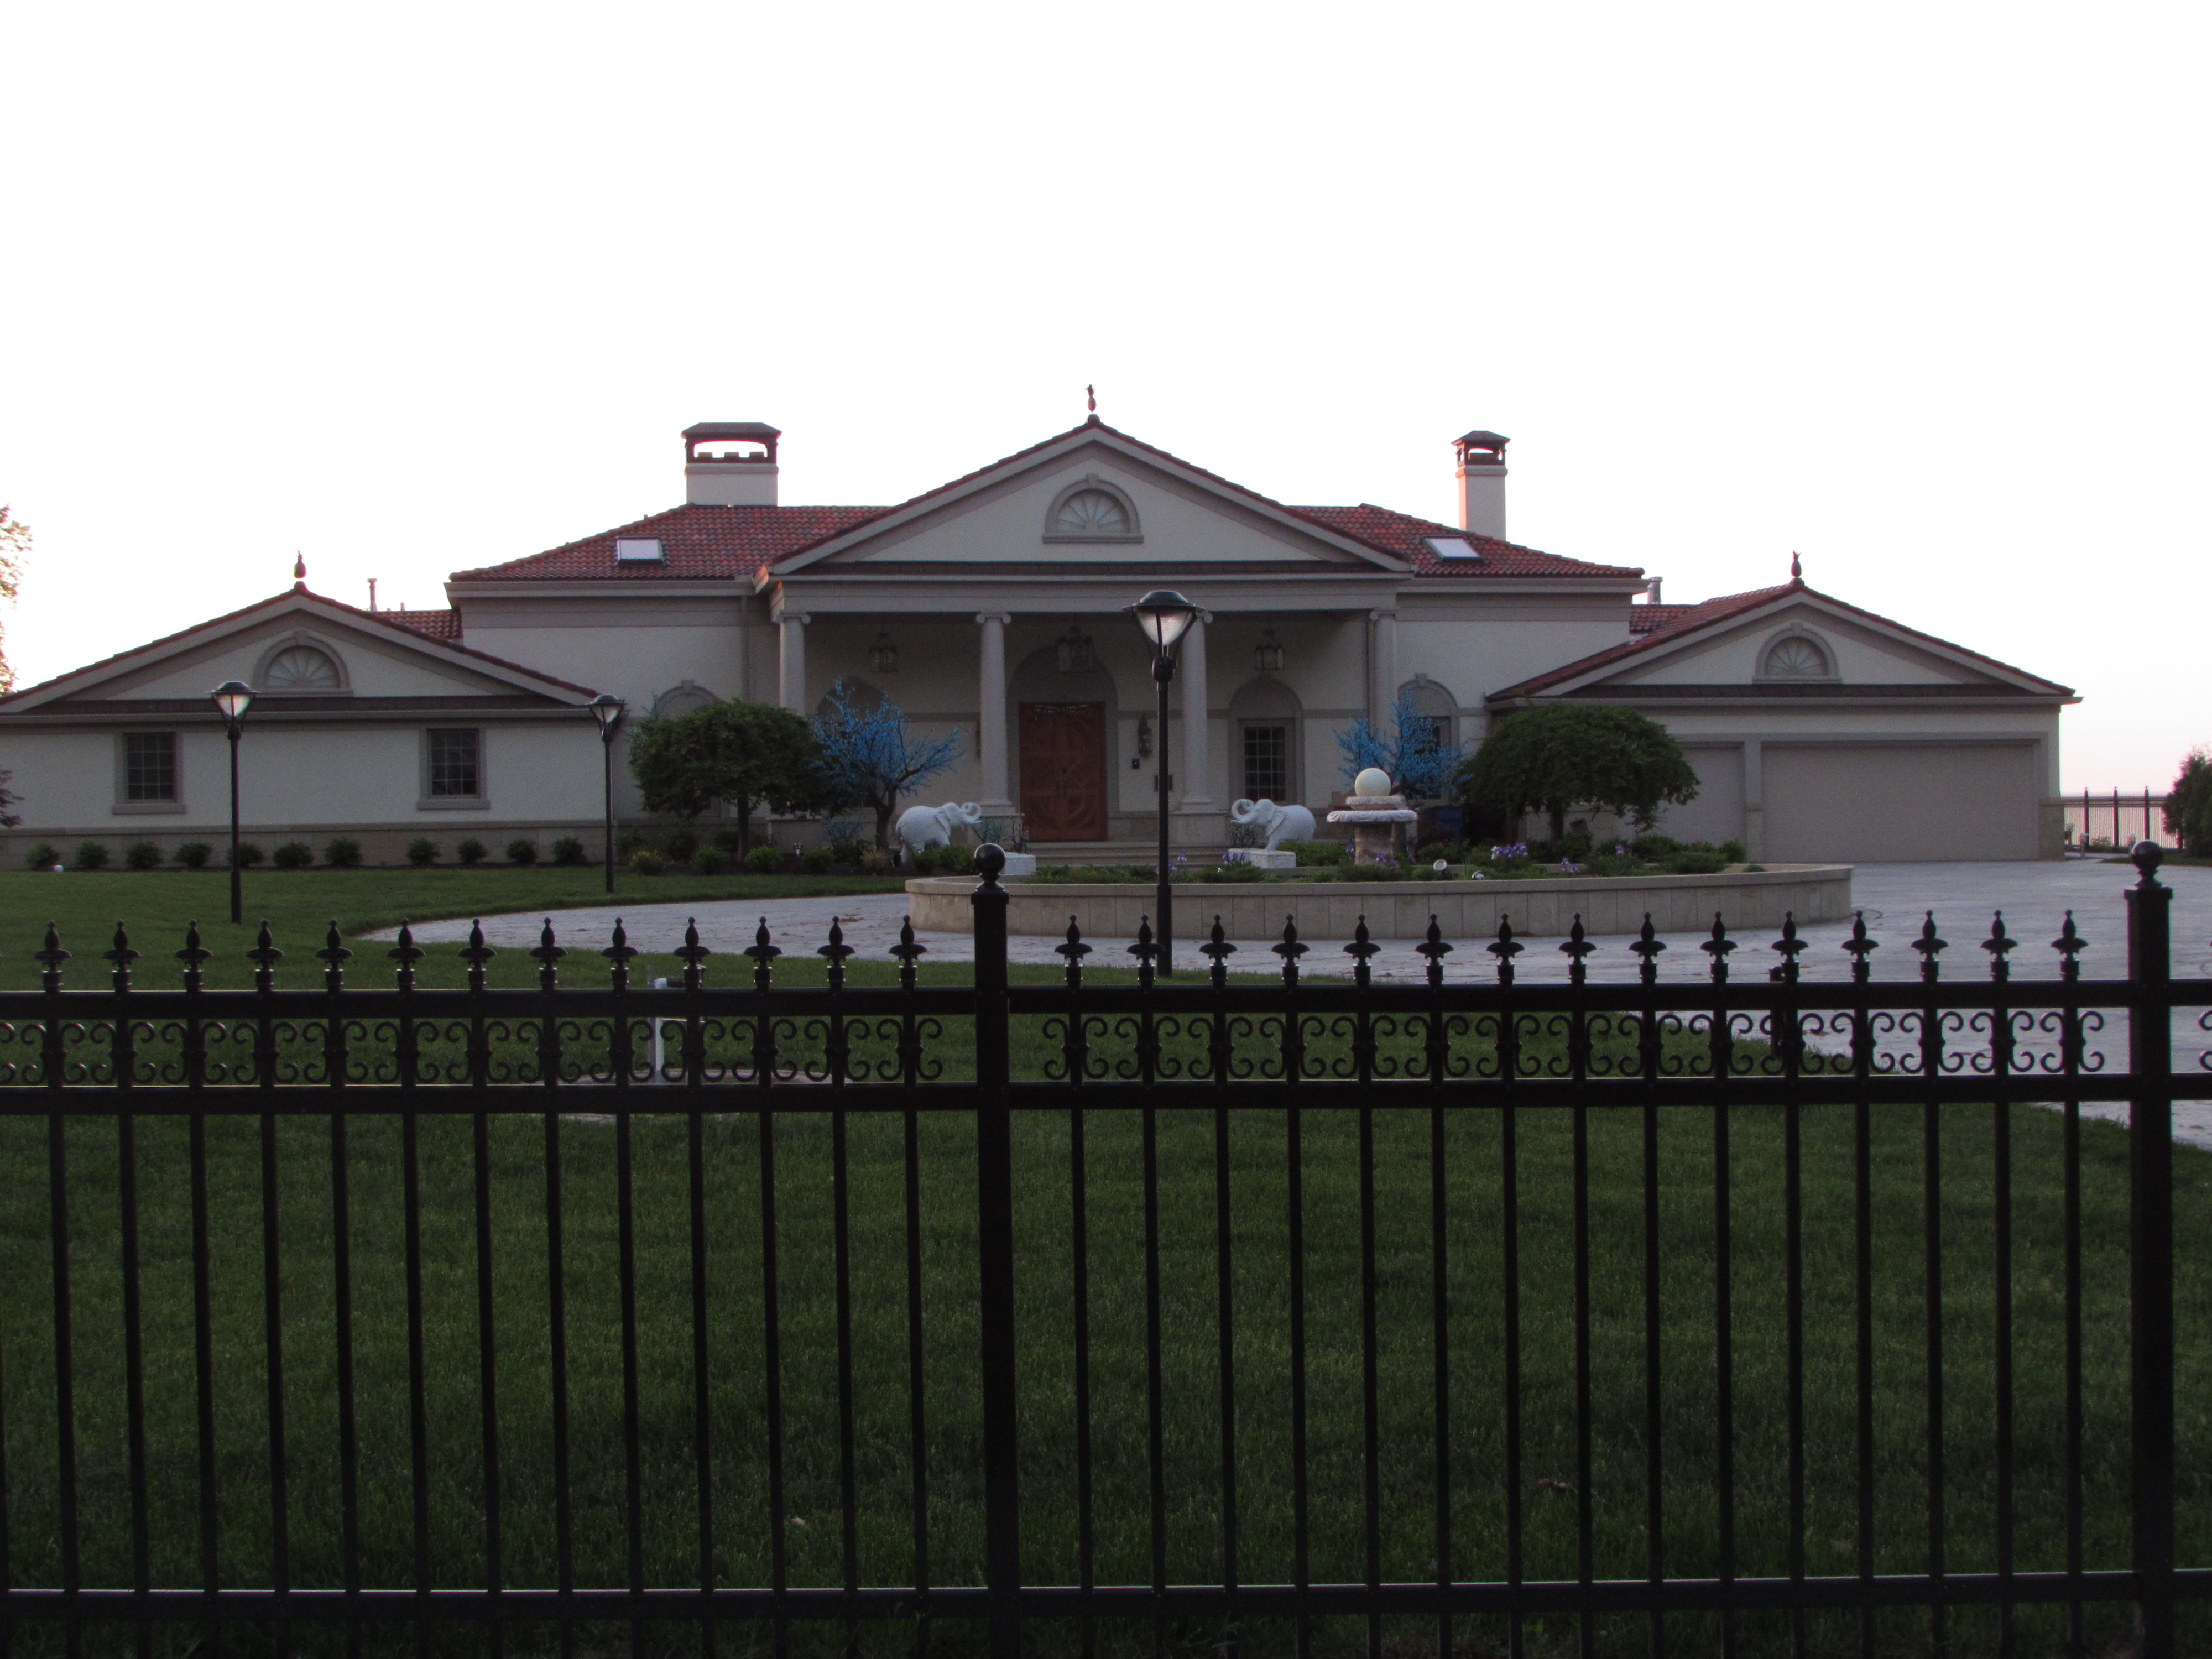 front lawn with black wrought iron rail in front and home in the back ground beautiful home on lake front lake erie in northern ohio usa, image taken by Nancy K Gurish, Editor Your Health And Tech Friend Magazine, A Julialanan Production LLC,